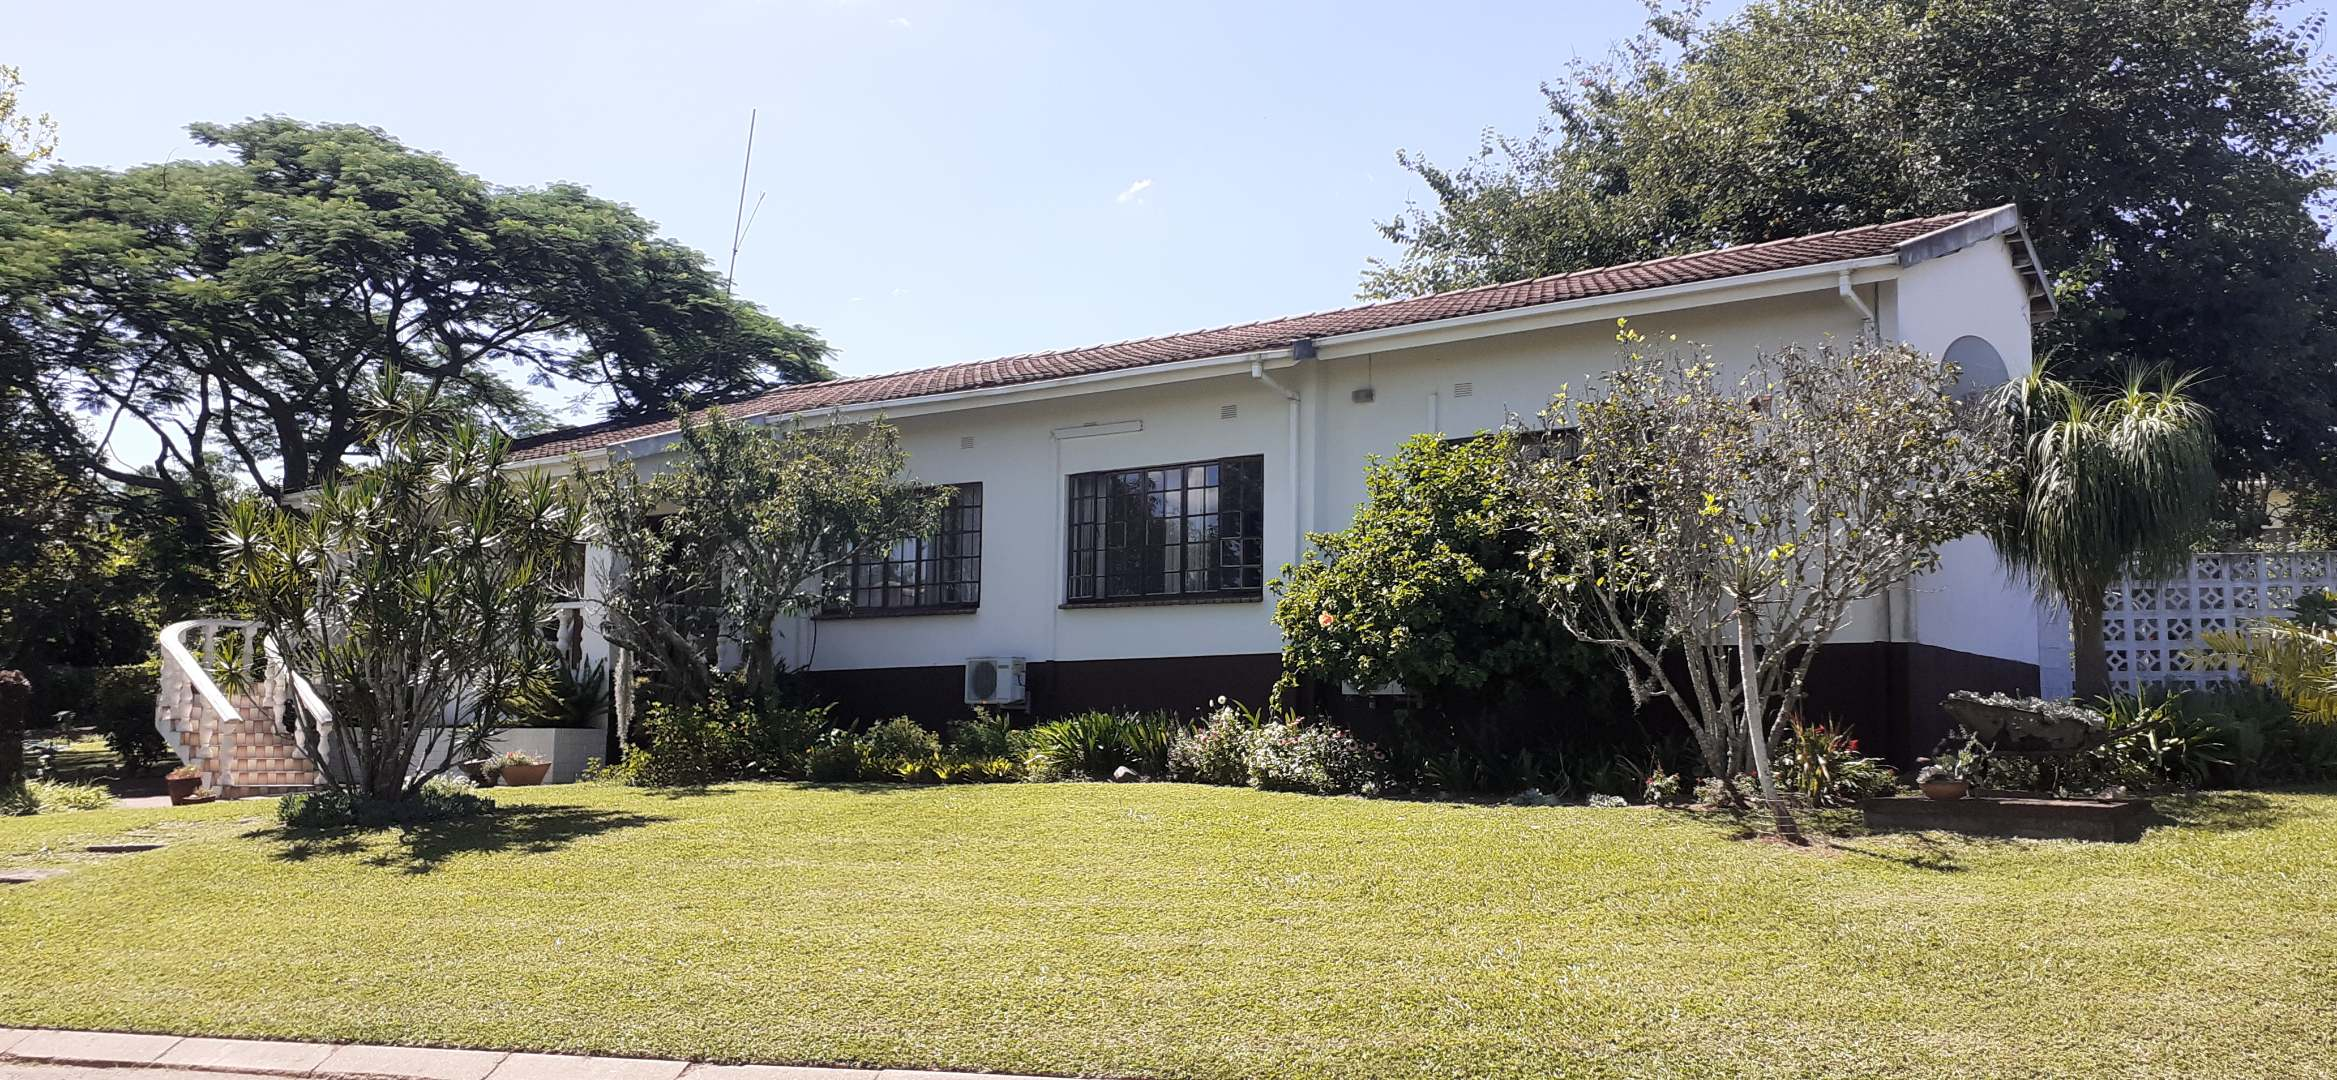 4 Bedroom House For Sale in Matsapha